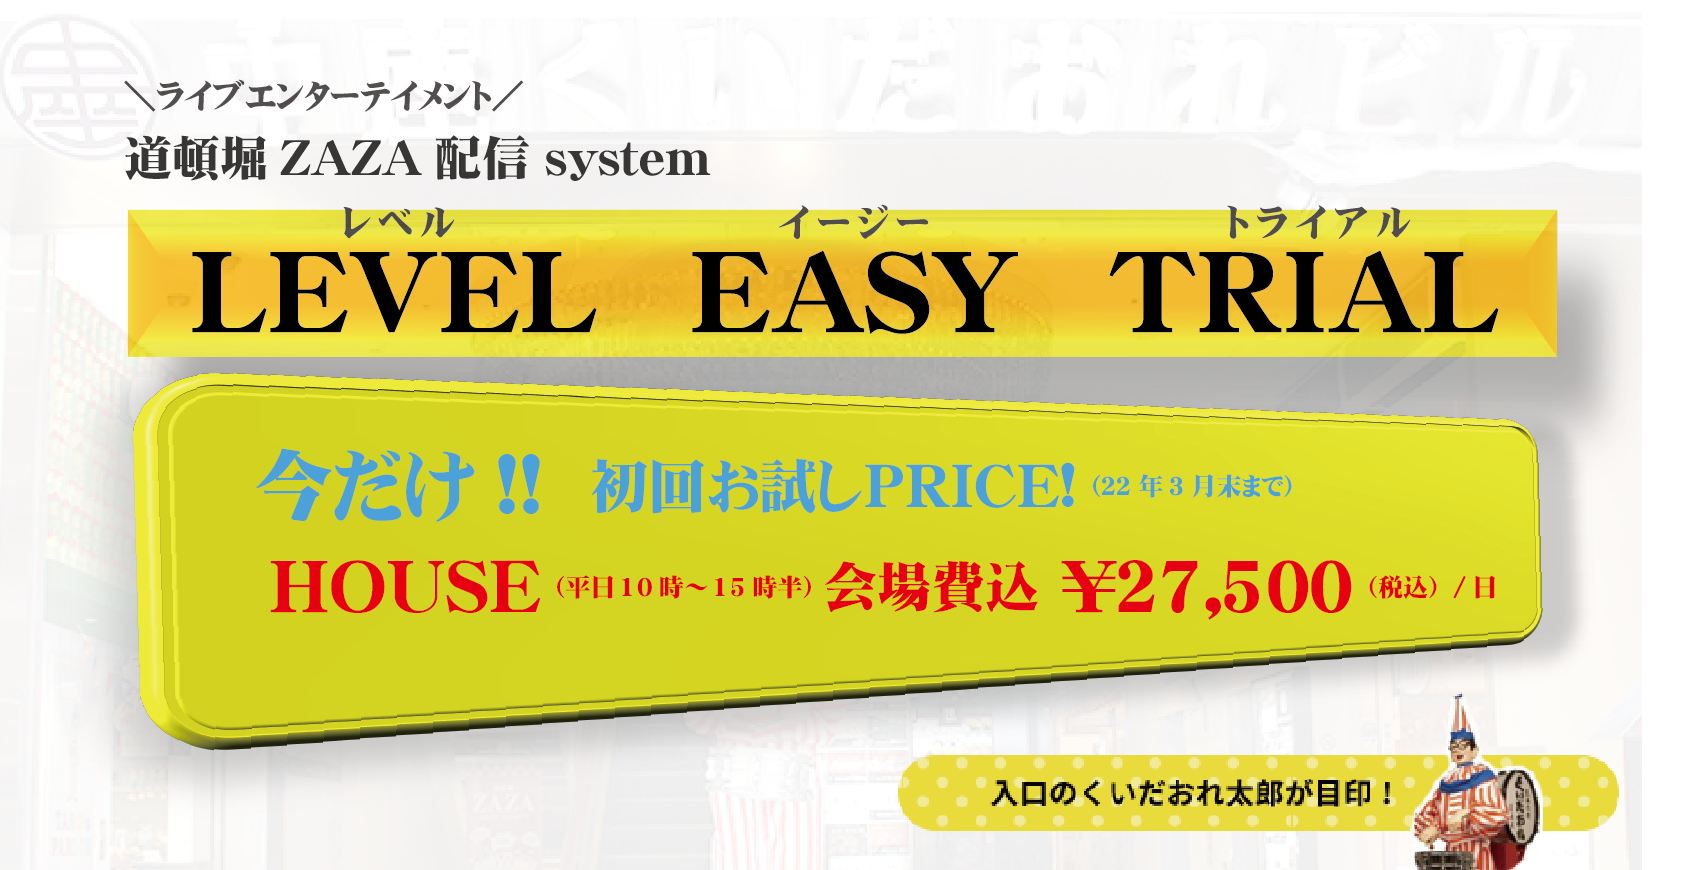 LEVEL EASY TRIAL